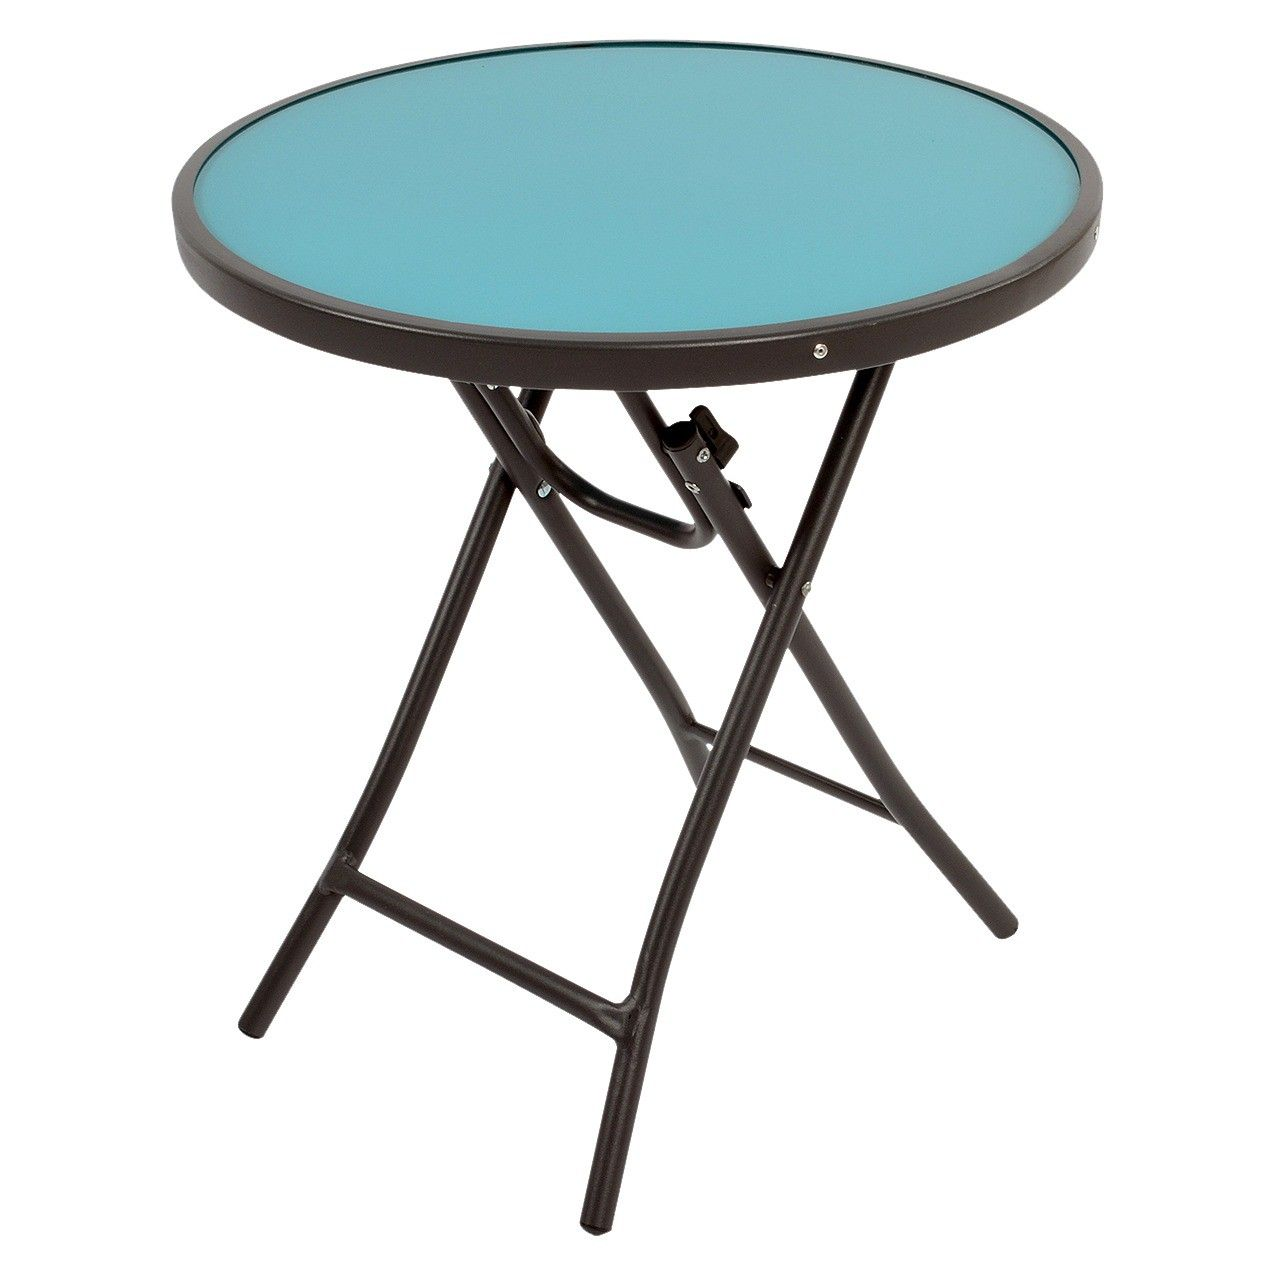 bistro accent table turq target patio patios turquoise room essentials long living chairs pink chair furniture cushions ikea linen storage boxes tiffany peacock floor lamp fabric